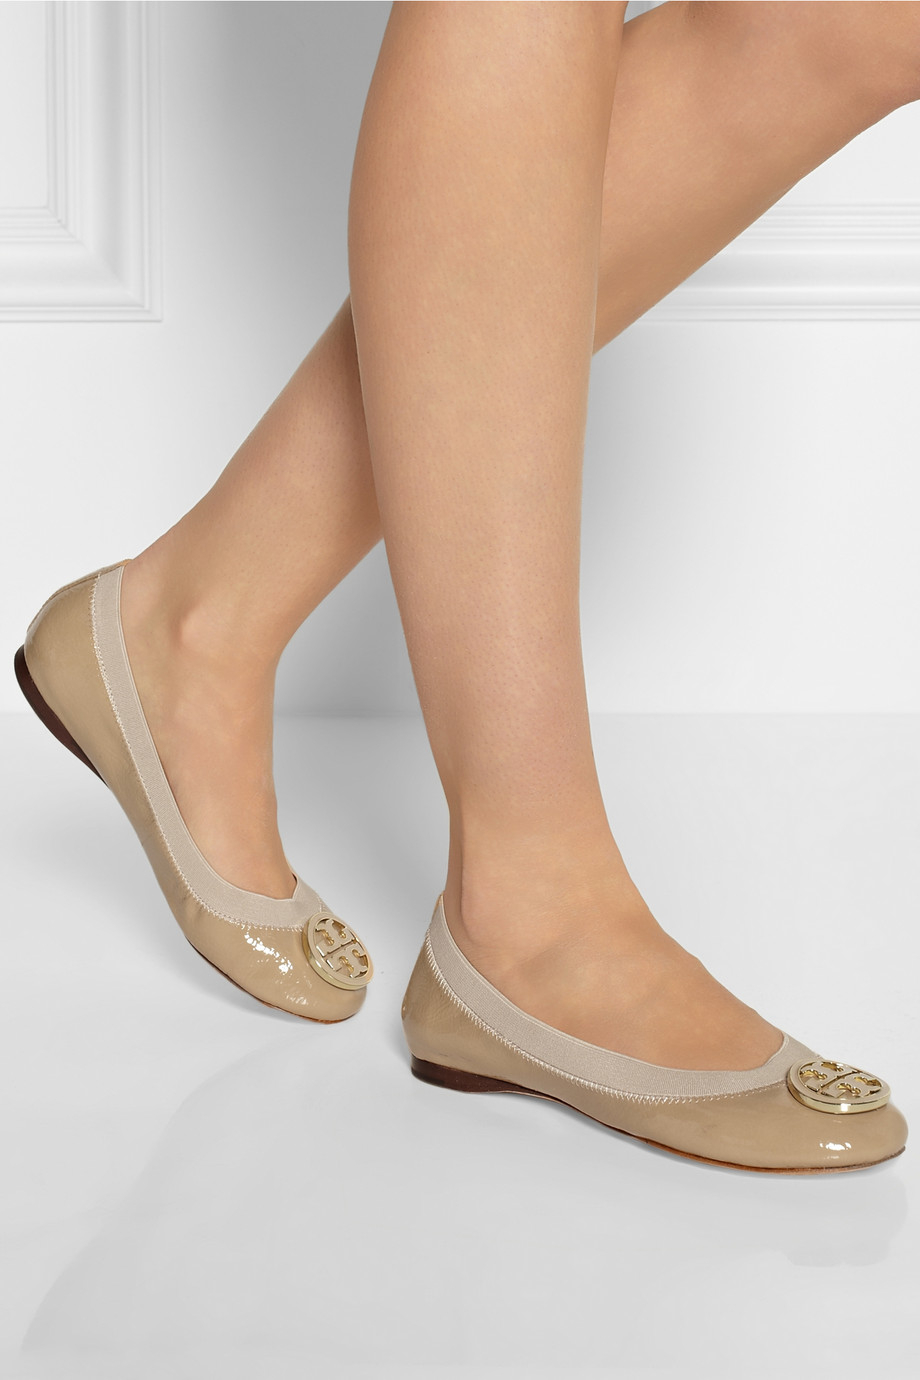 30e016bf0816 Tory Burch Caroline Patentleather Ballet Flats in Natural - Lyst